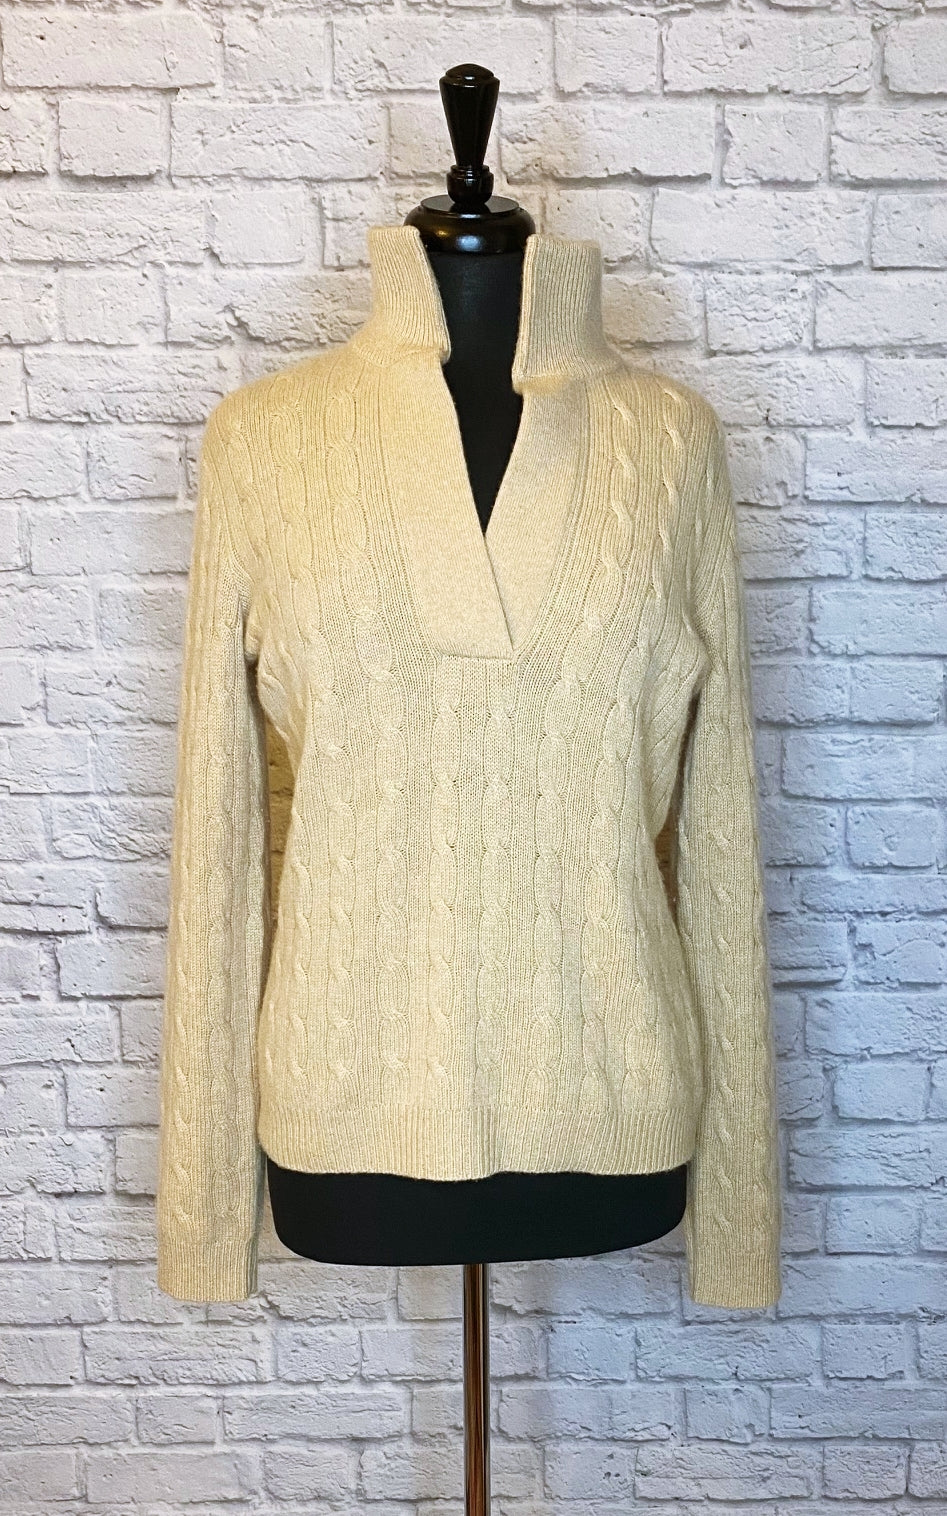 Ralph Lauren Black Label 'Oprah' Cable Cashmere Sweater